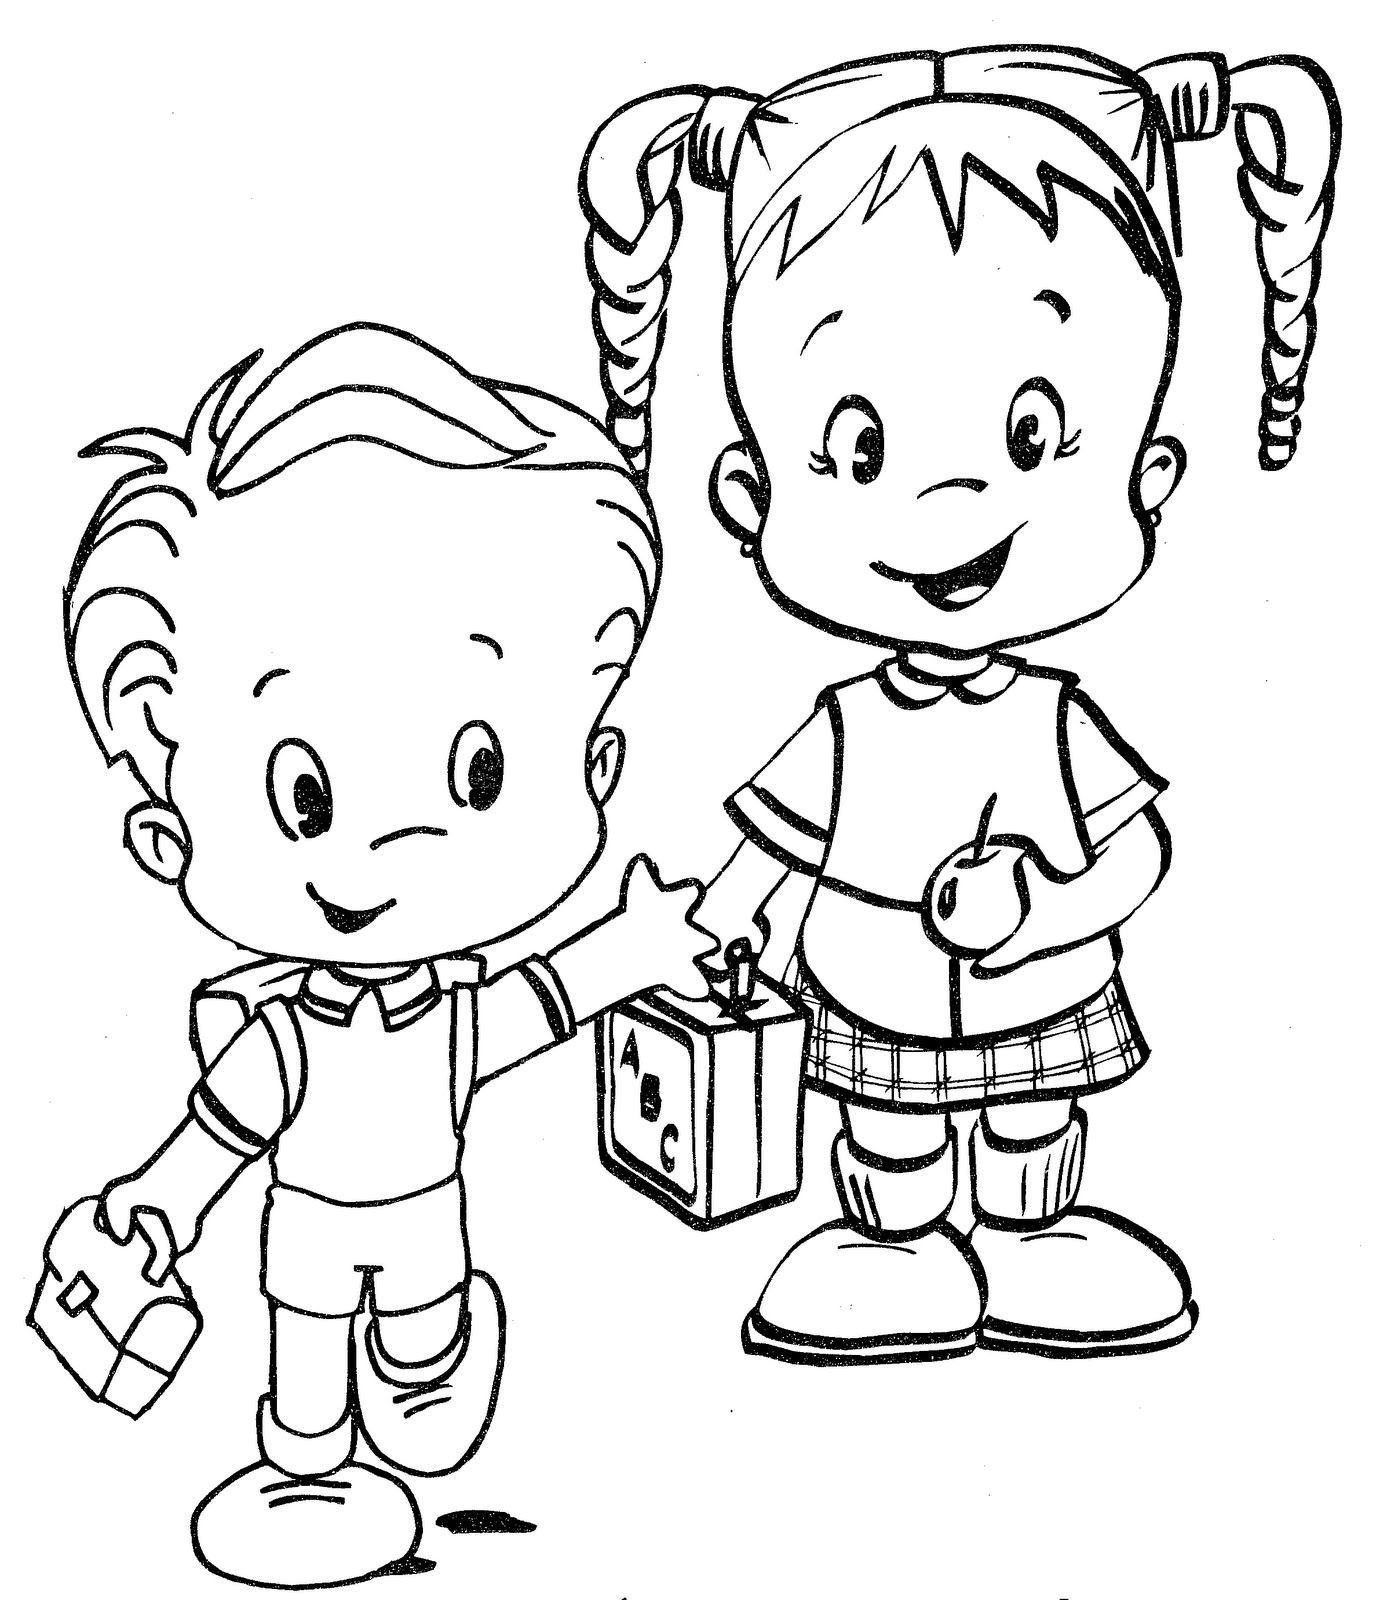 Coloring Pages: January 2011 | Coloring | Pinterest | January, Svg ...